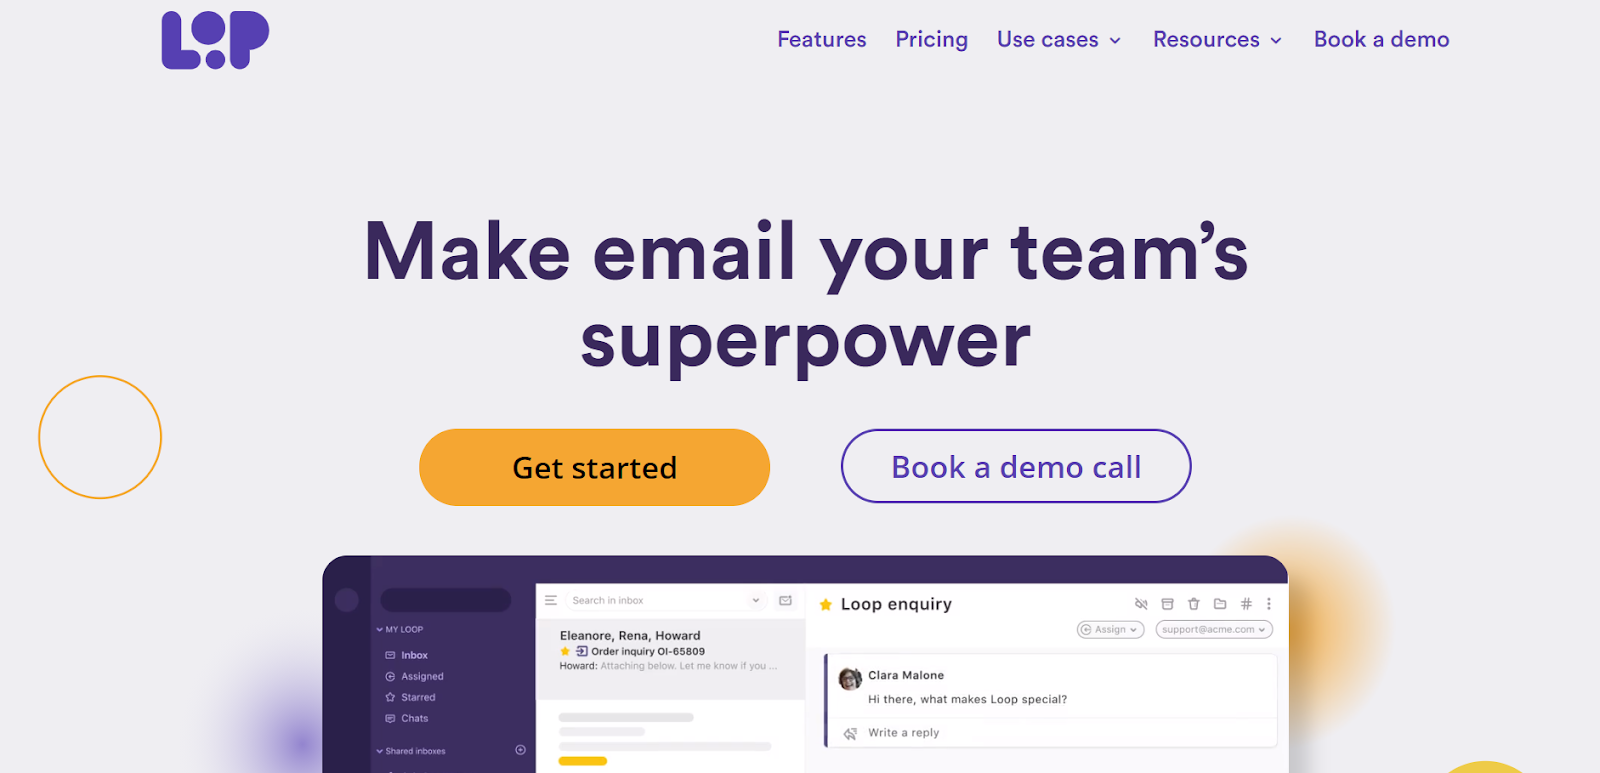 Loop homepage: Make email your team's superpower.